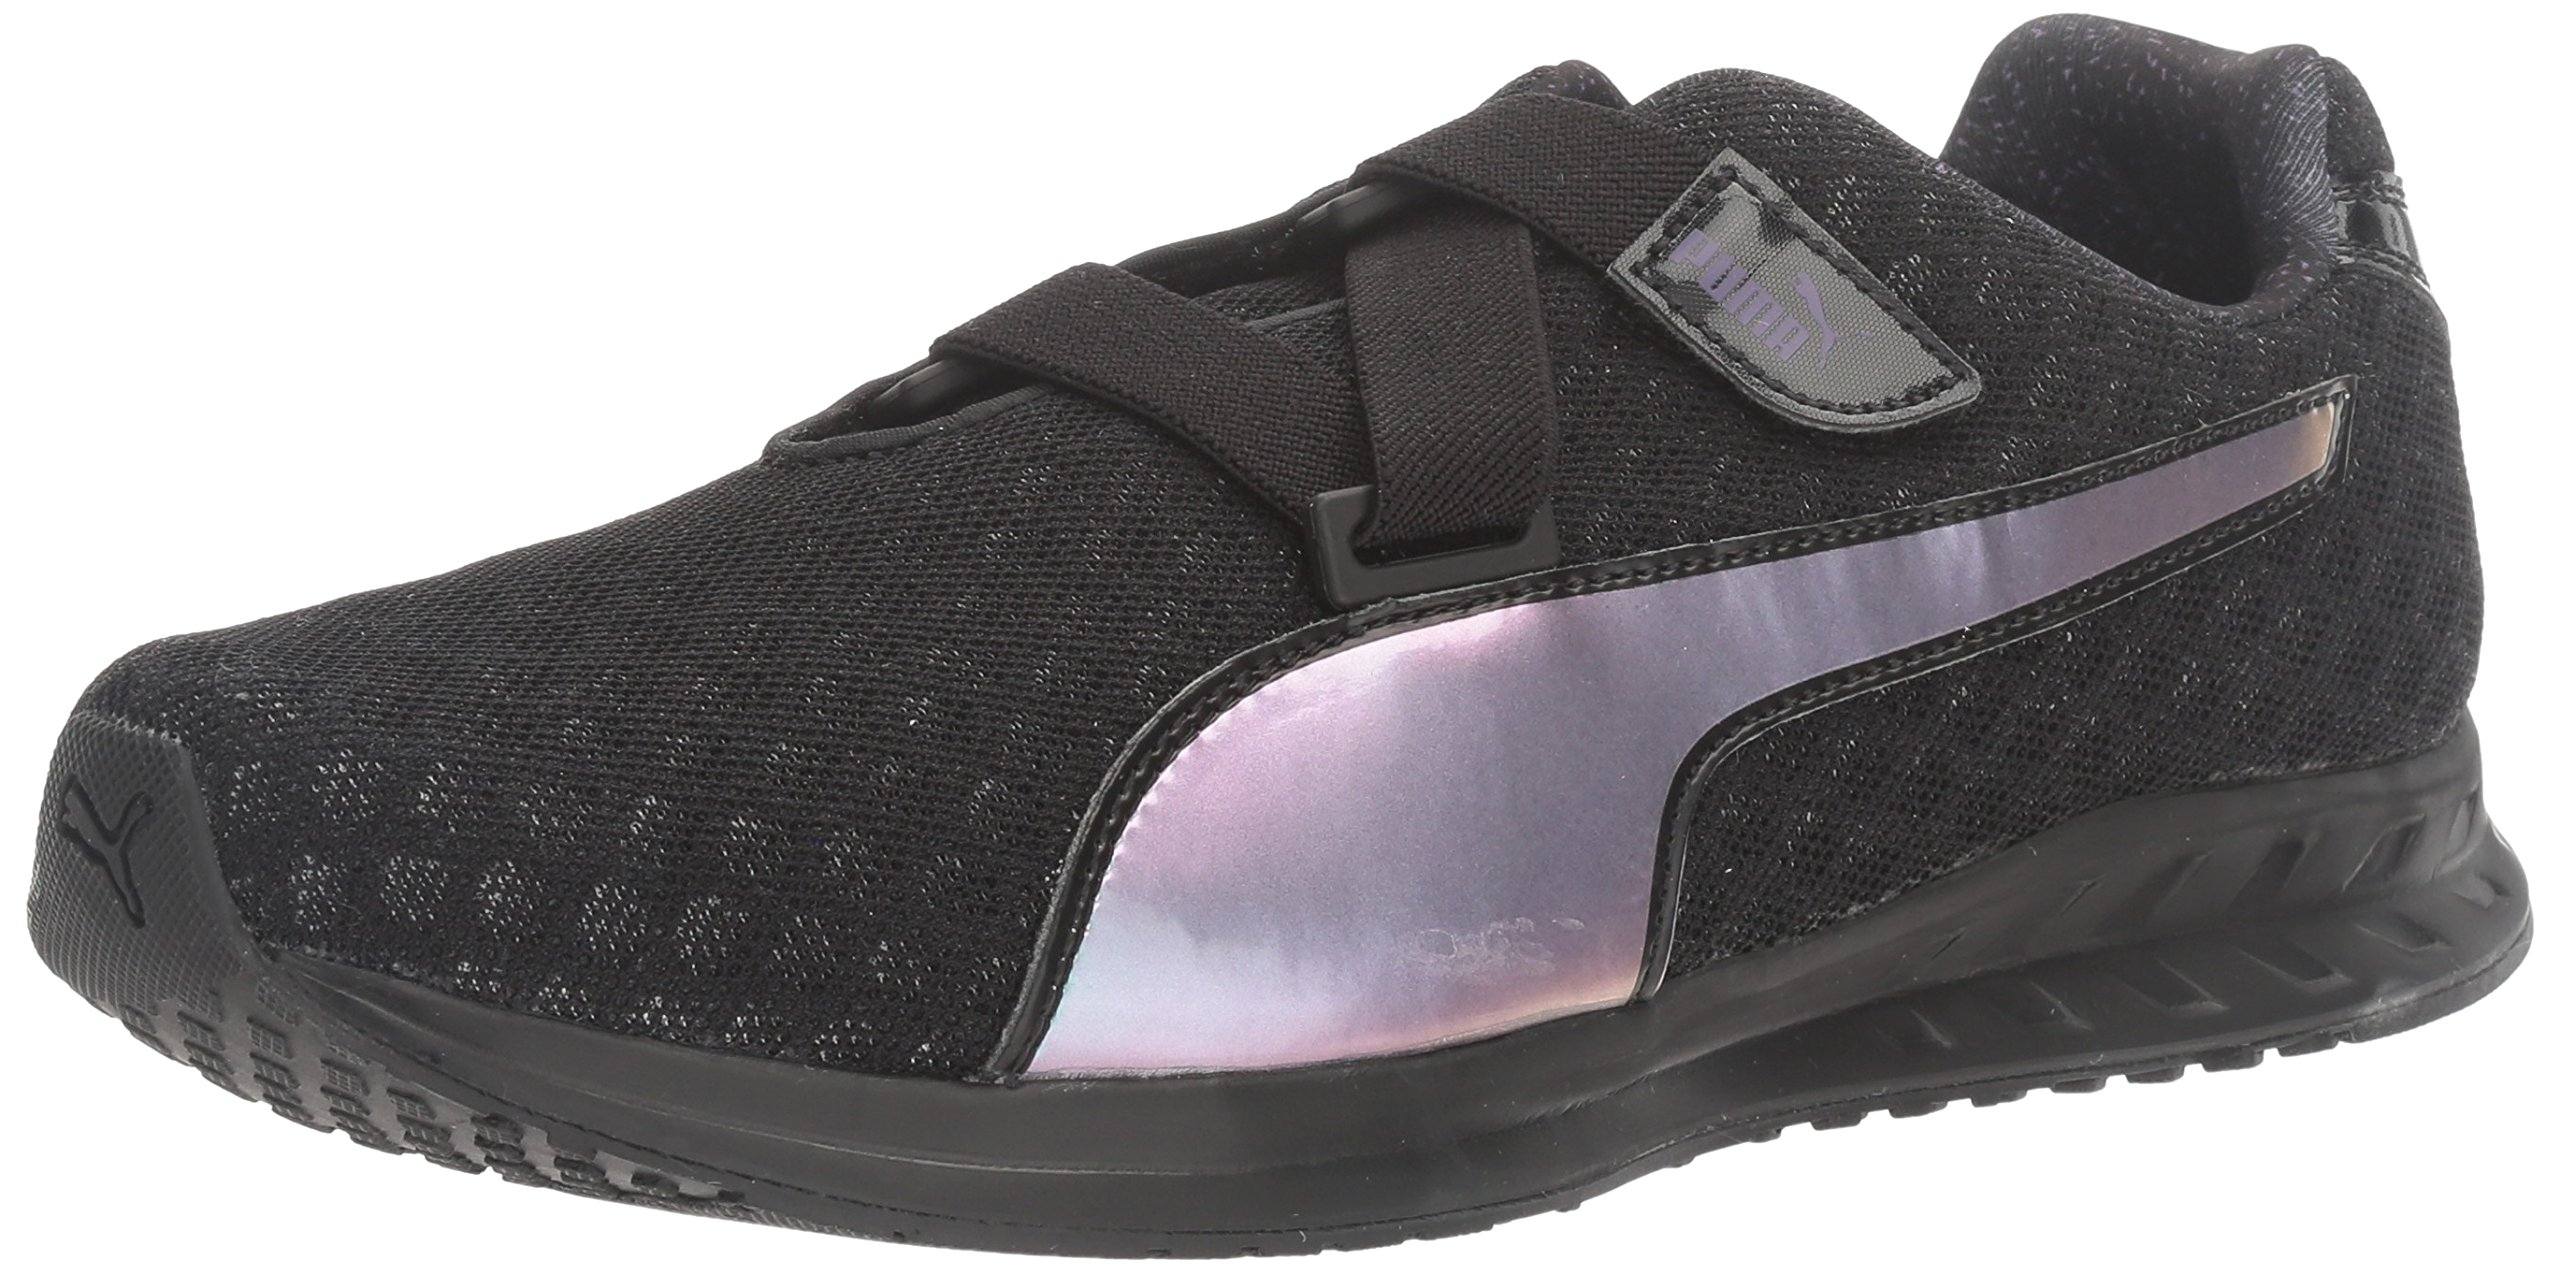 PUMA Women's Burst Alt Pearl Wn's Cross-Trainer Shoe, Black-Royal Purple, 6.5 M US